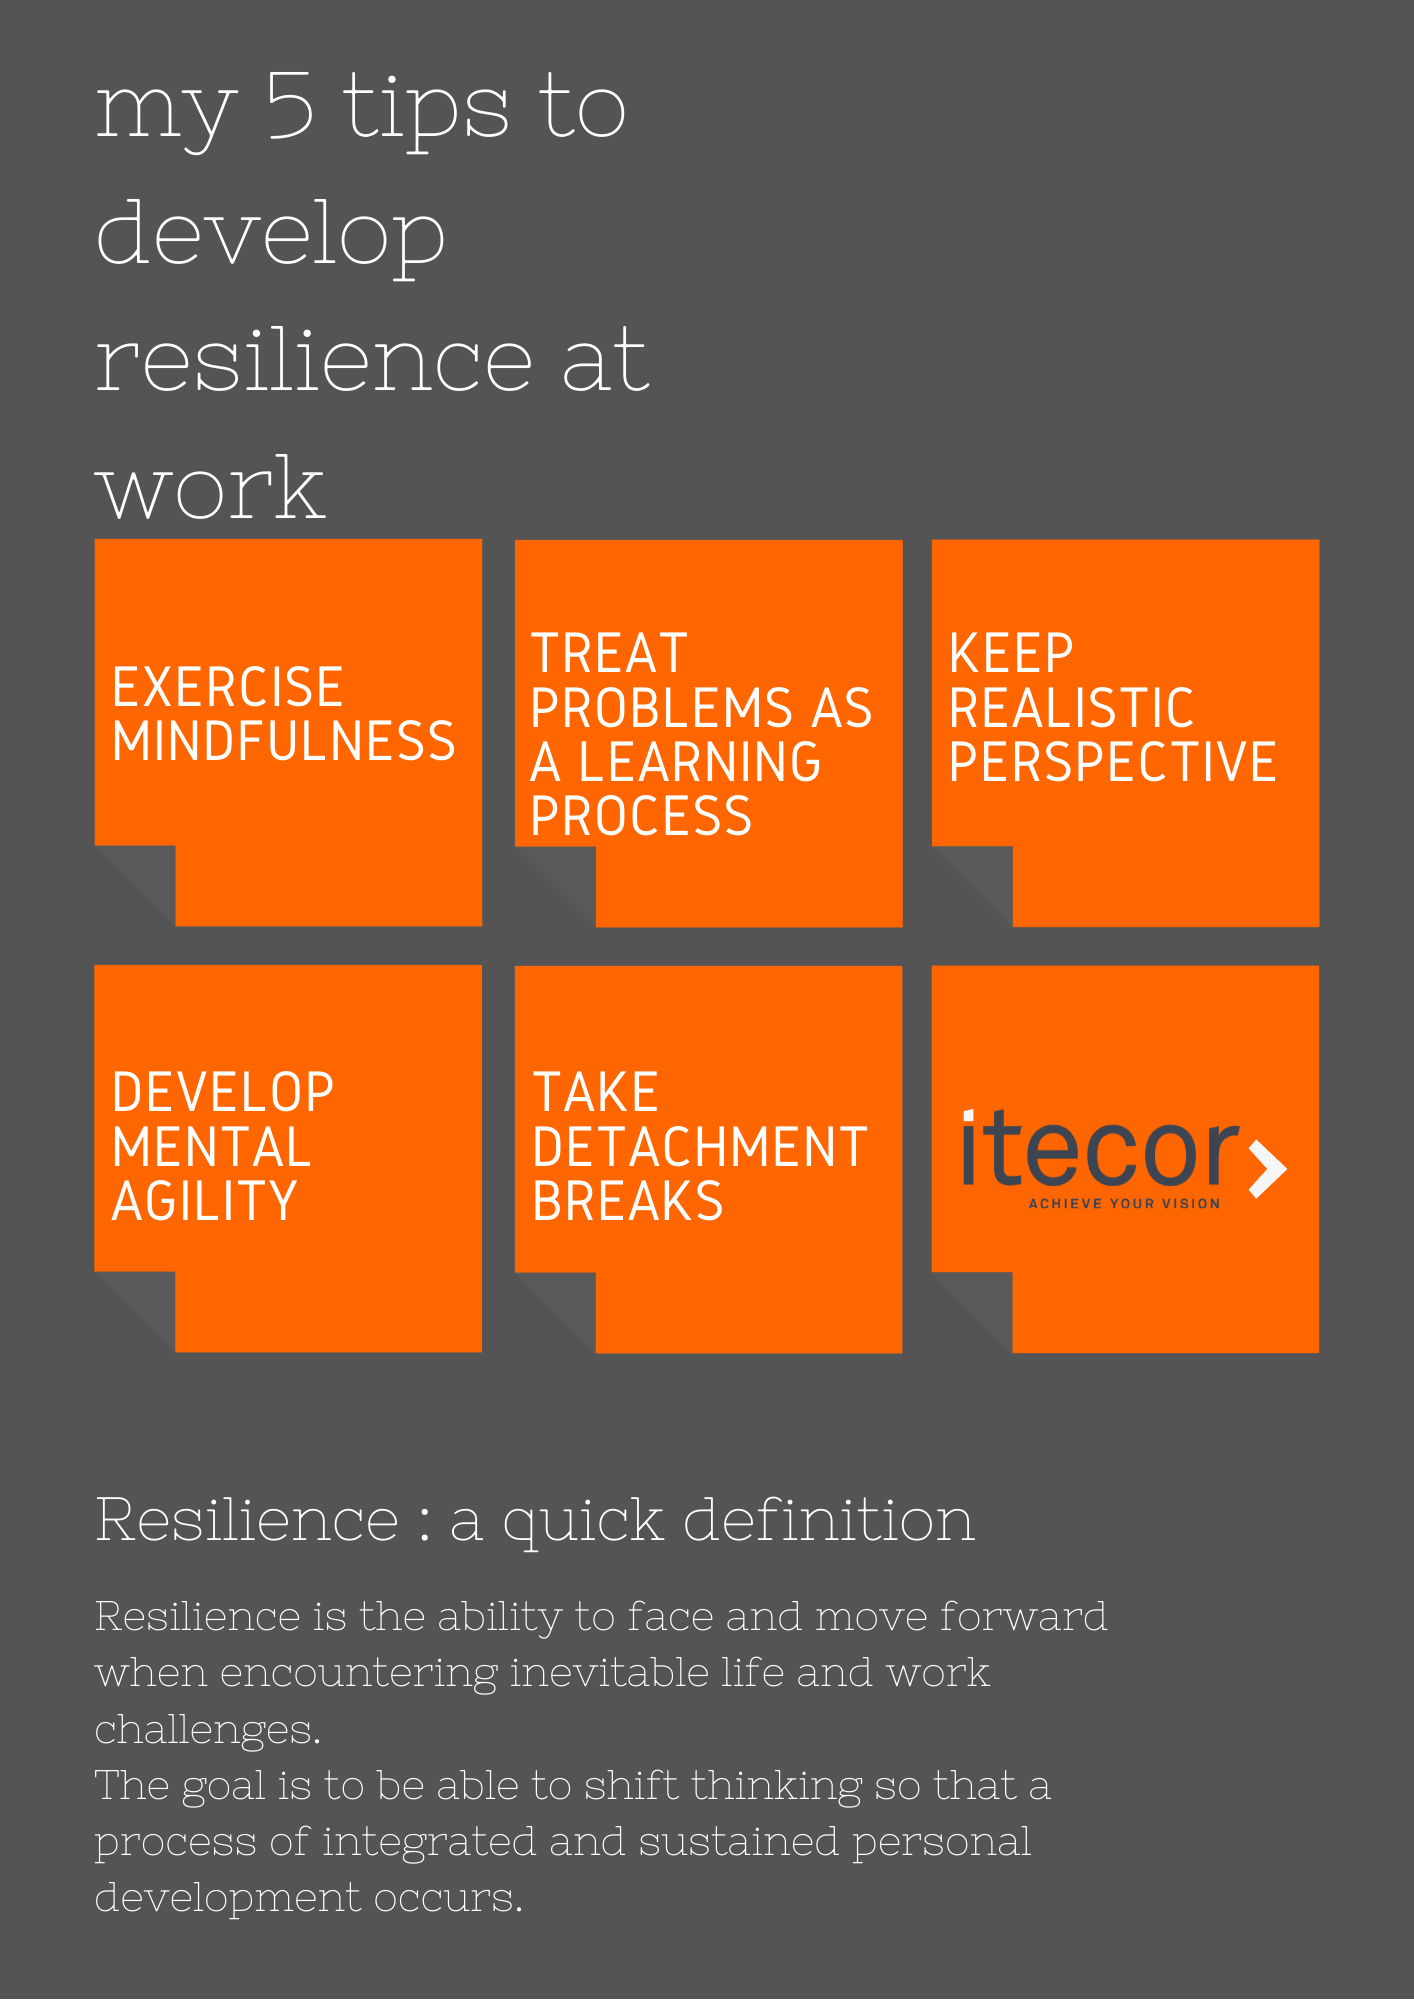 My 5 tips to develop resilience at work